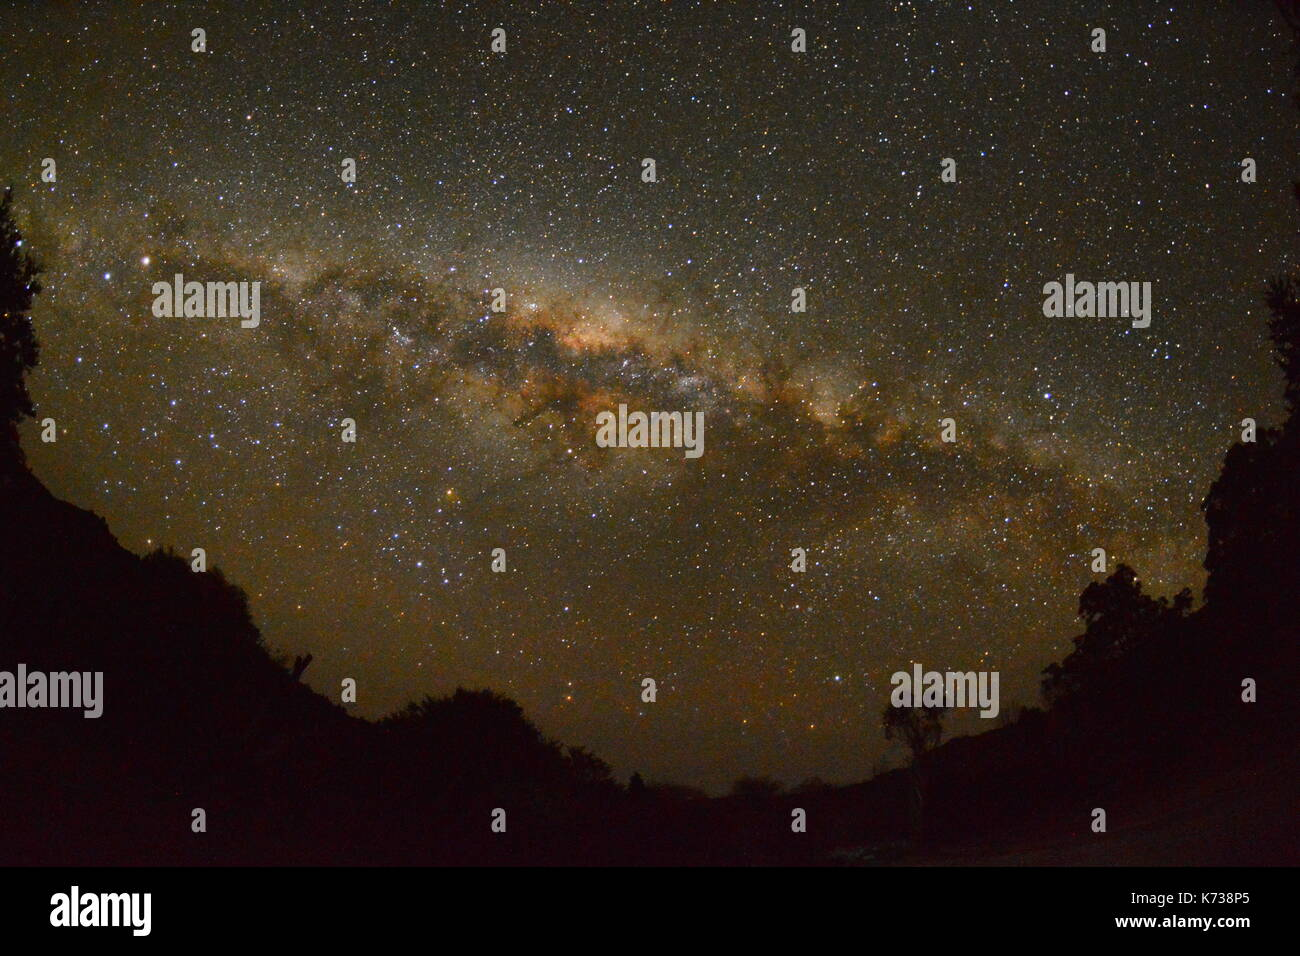 Galactic Center with no filter - Stock Image